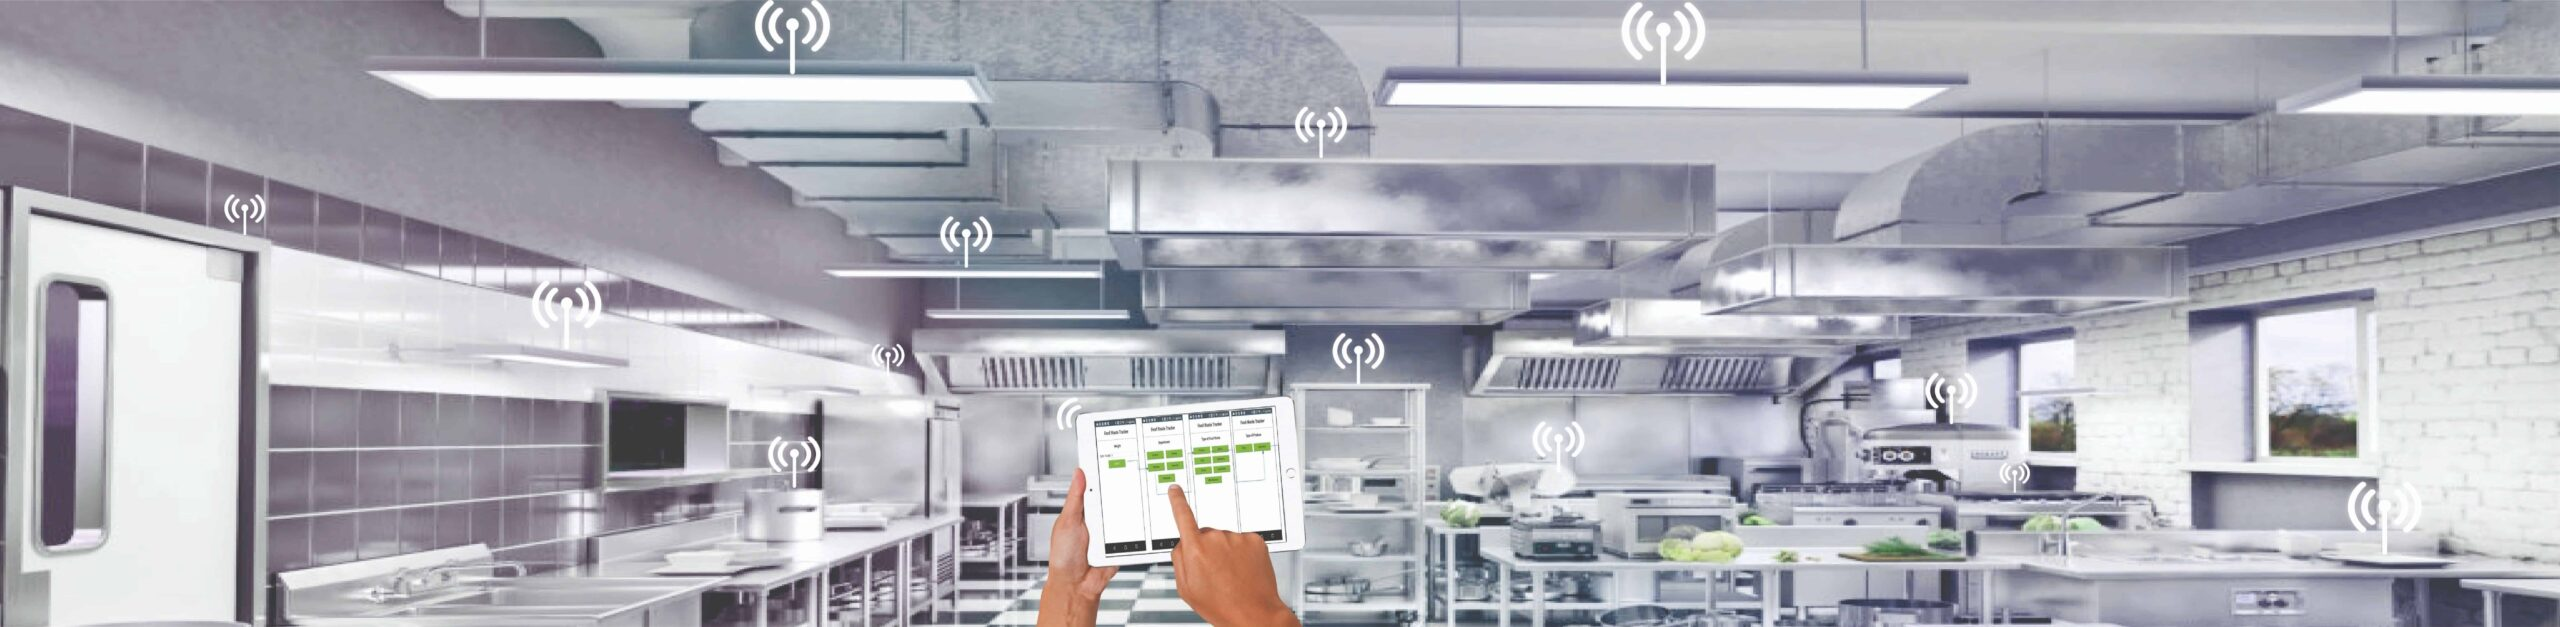 IoT Food and Beverage